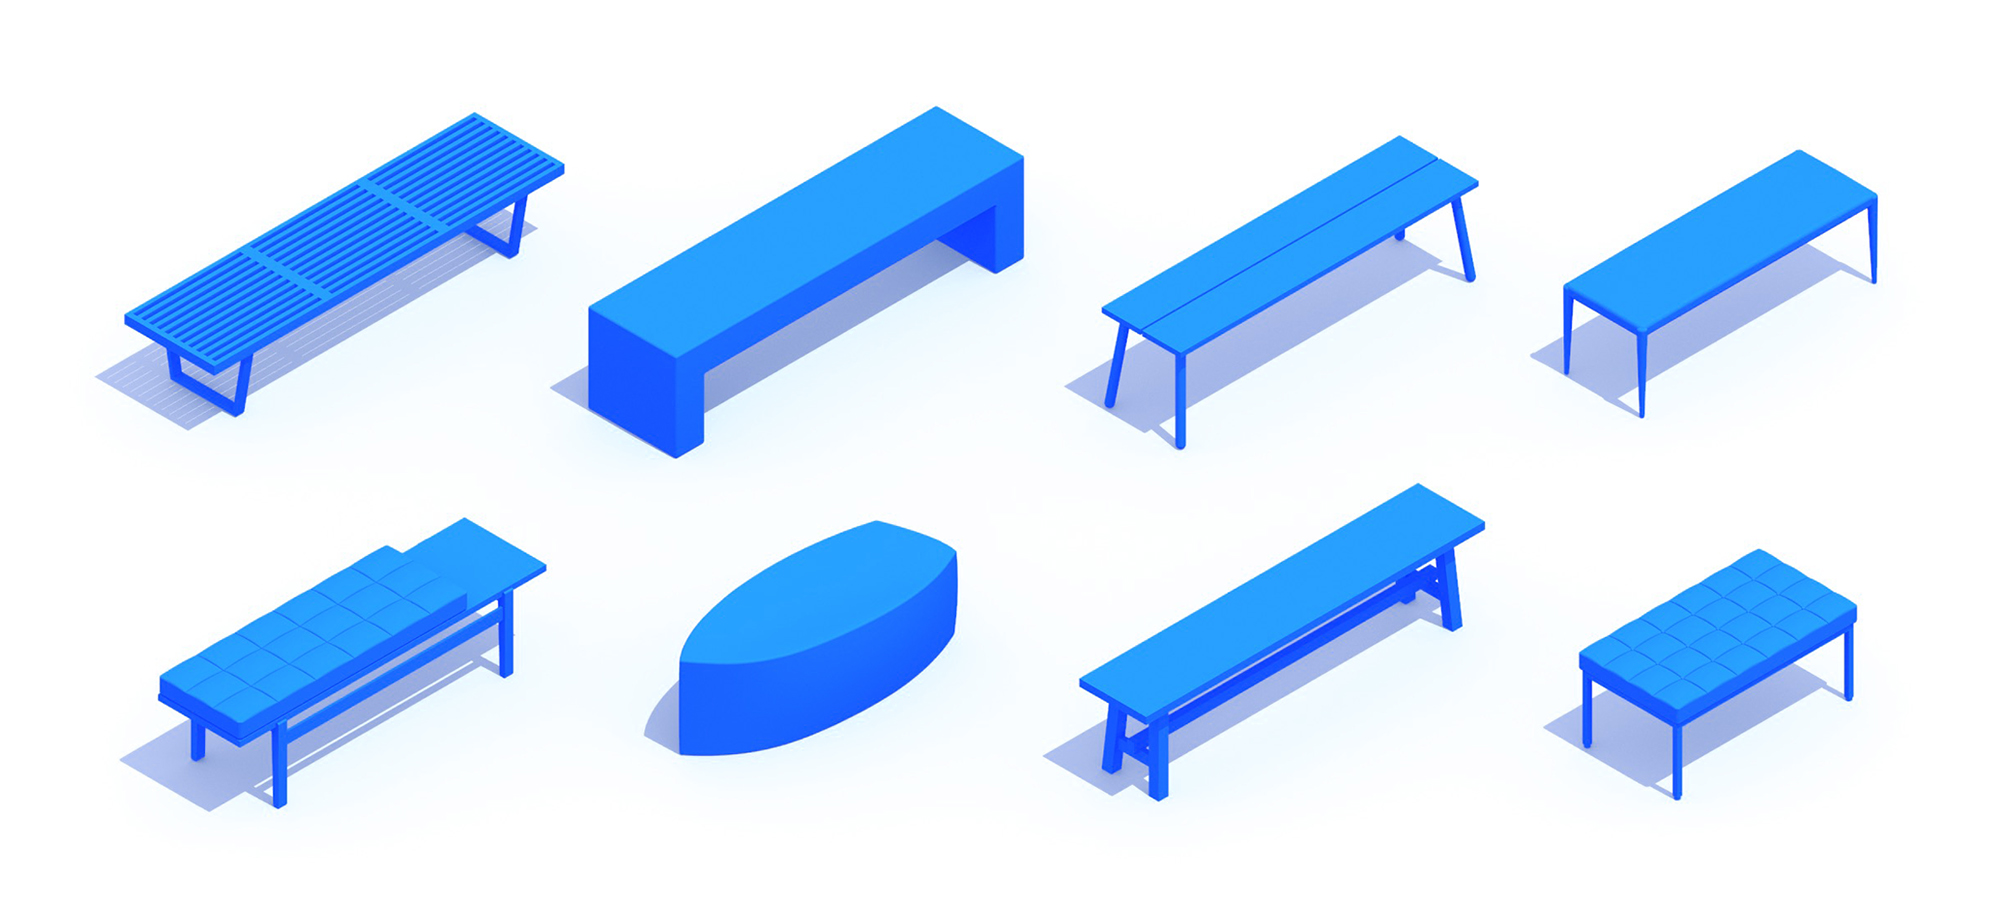 Assorted group of scaled 3D Benches representing a range of sizes, styles, functions and designs